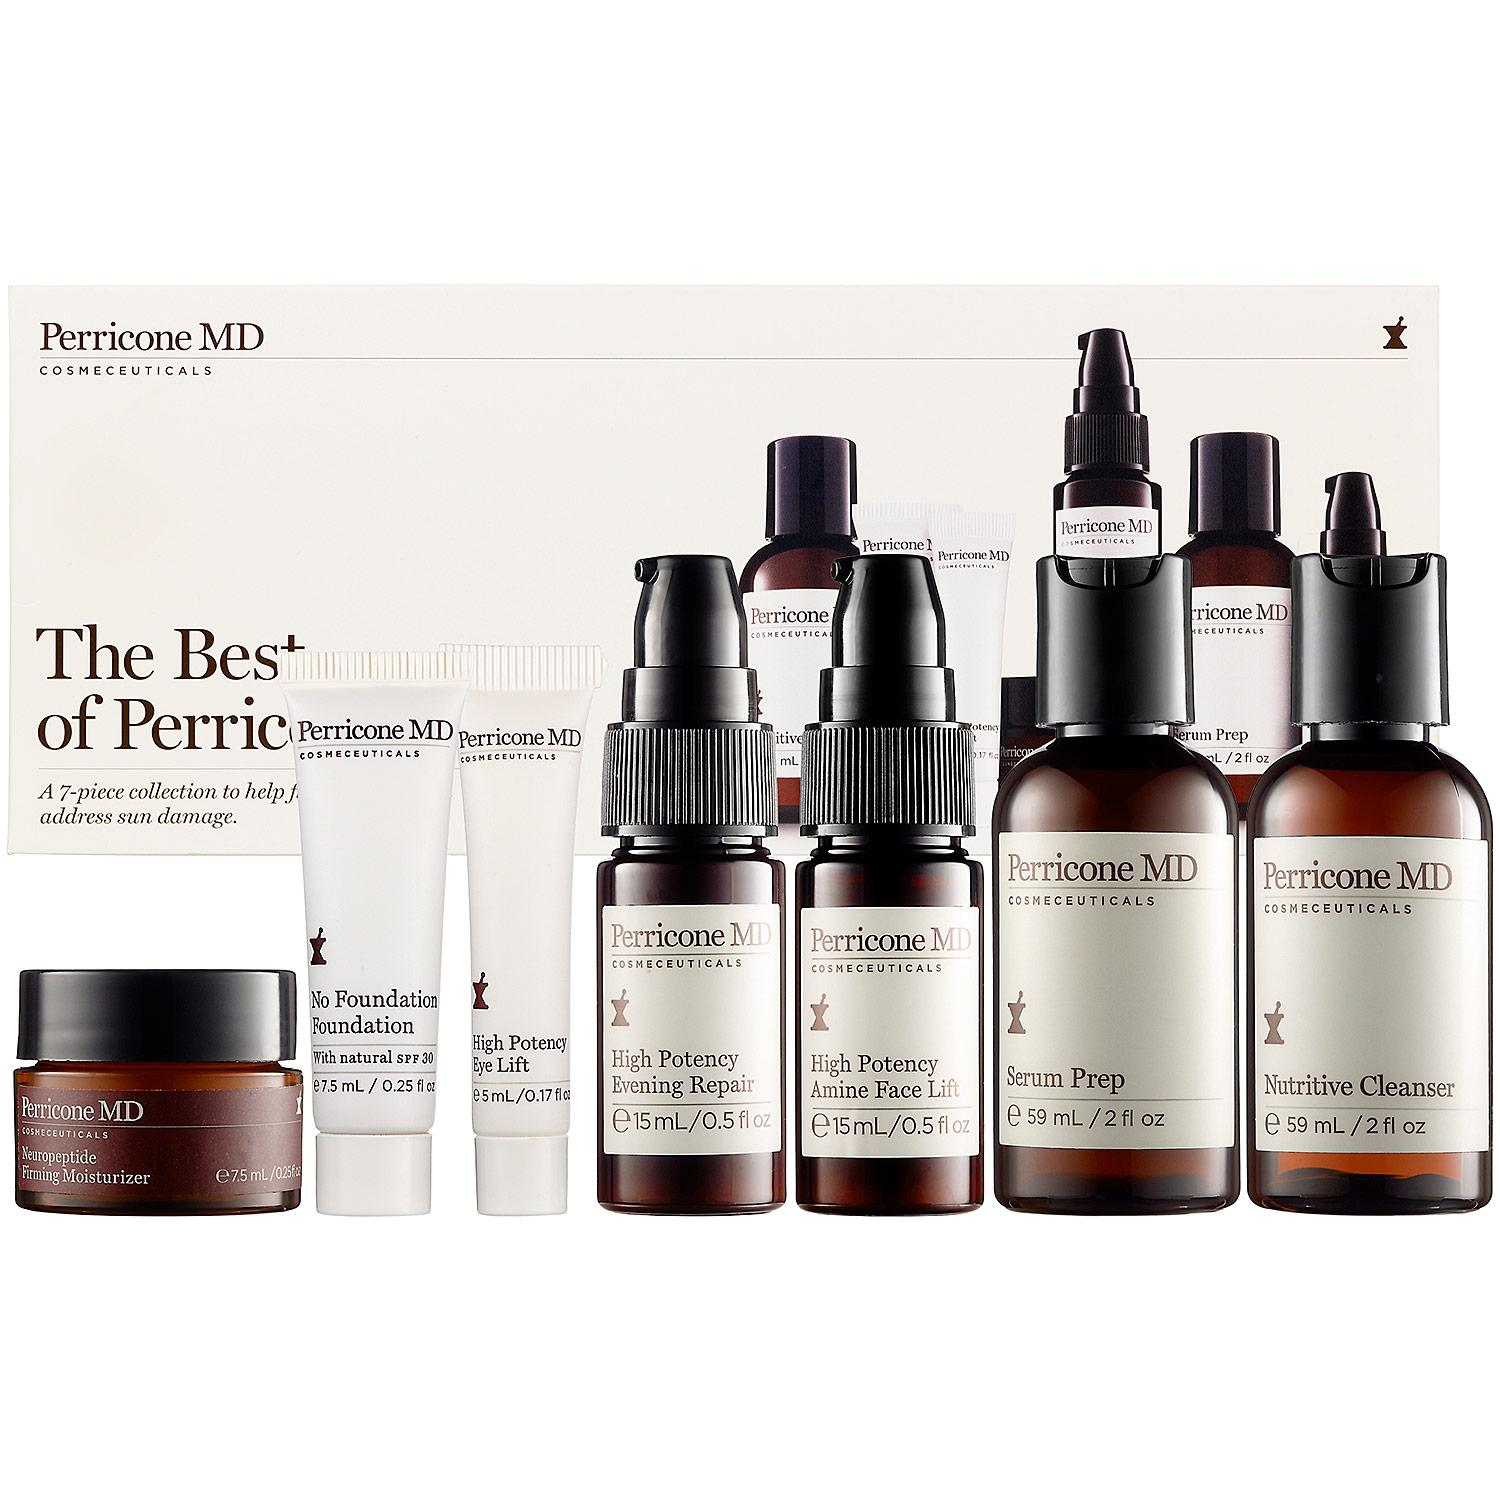 Perricone MD The Best Of Perricone